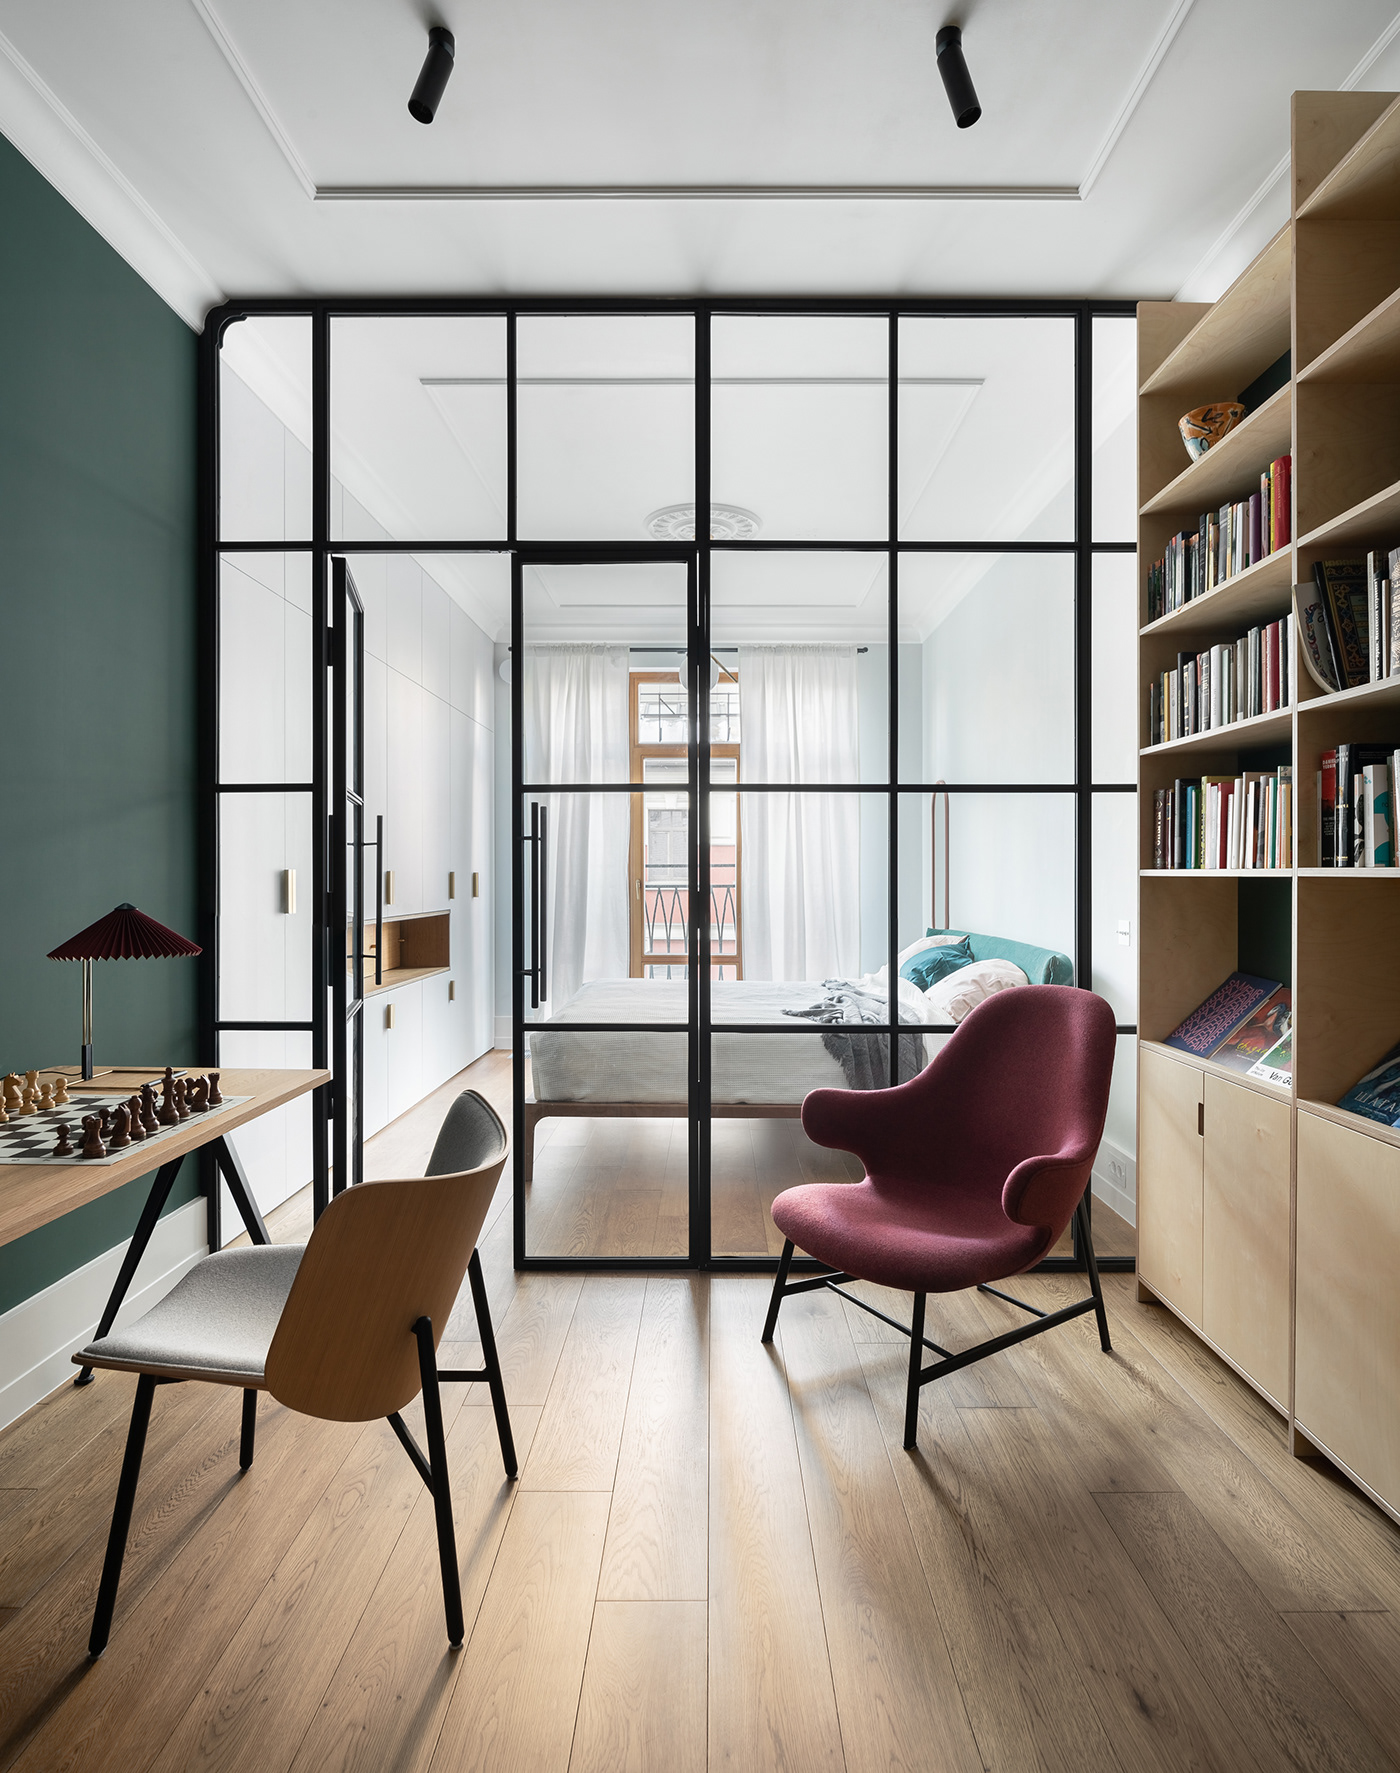 appartment appartment design  architecture design design interior interior design  katarsis architects plywood russian architects Saint-Petersburg